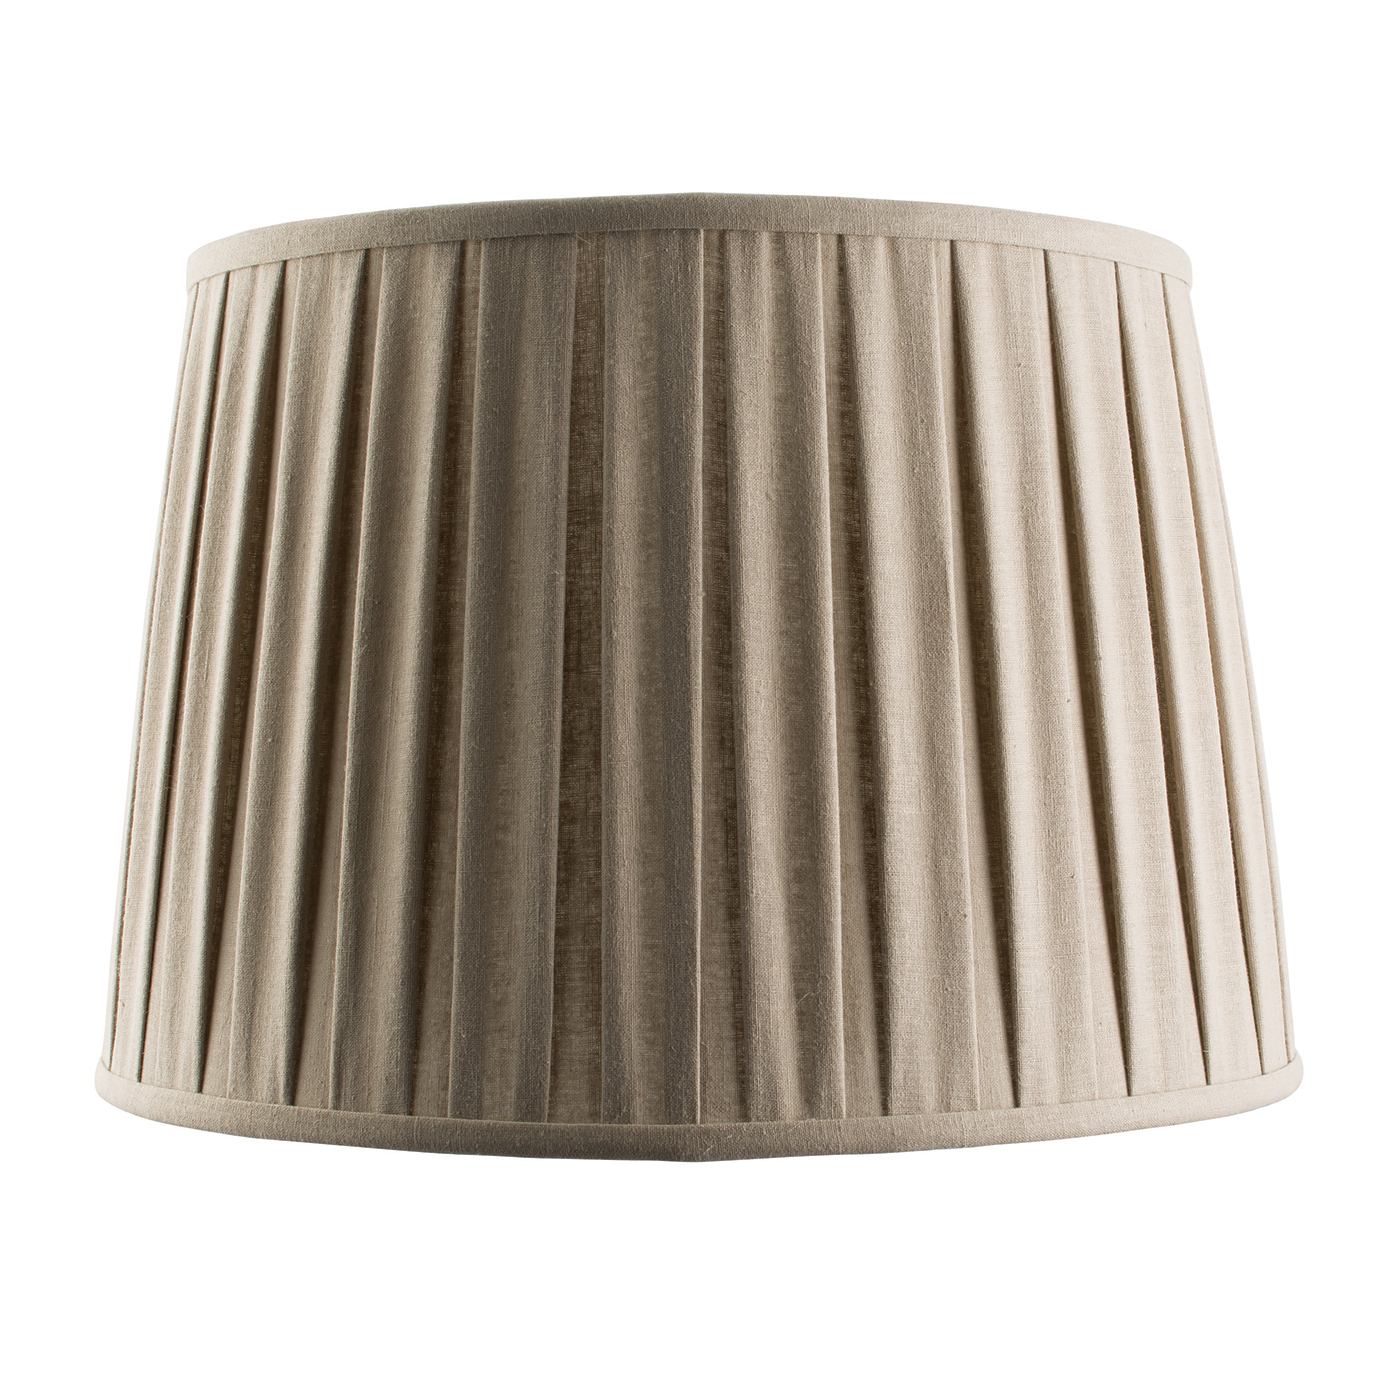 Endon 61354 Cleo Shade 16in Rev Gimbal